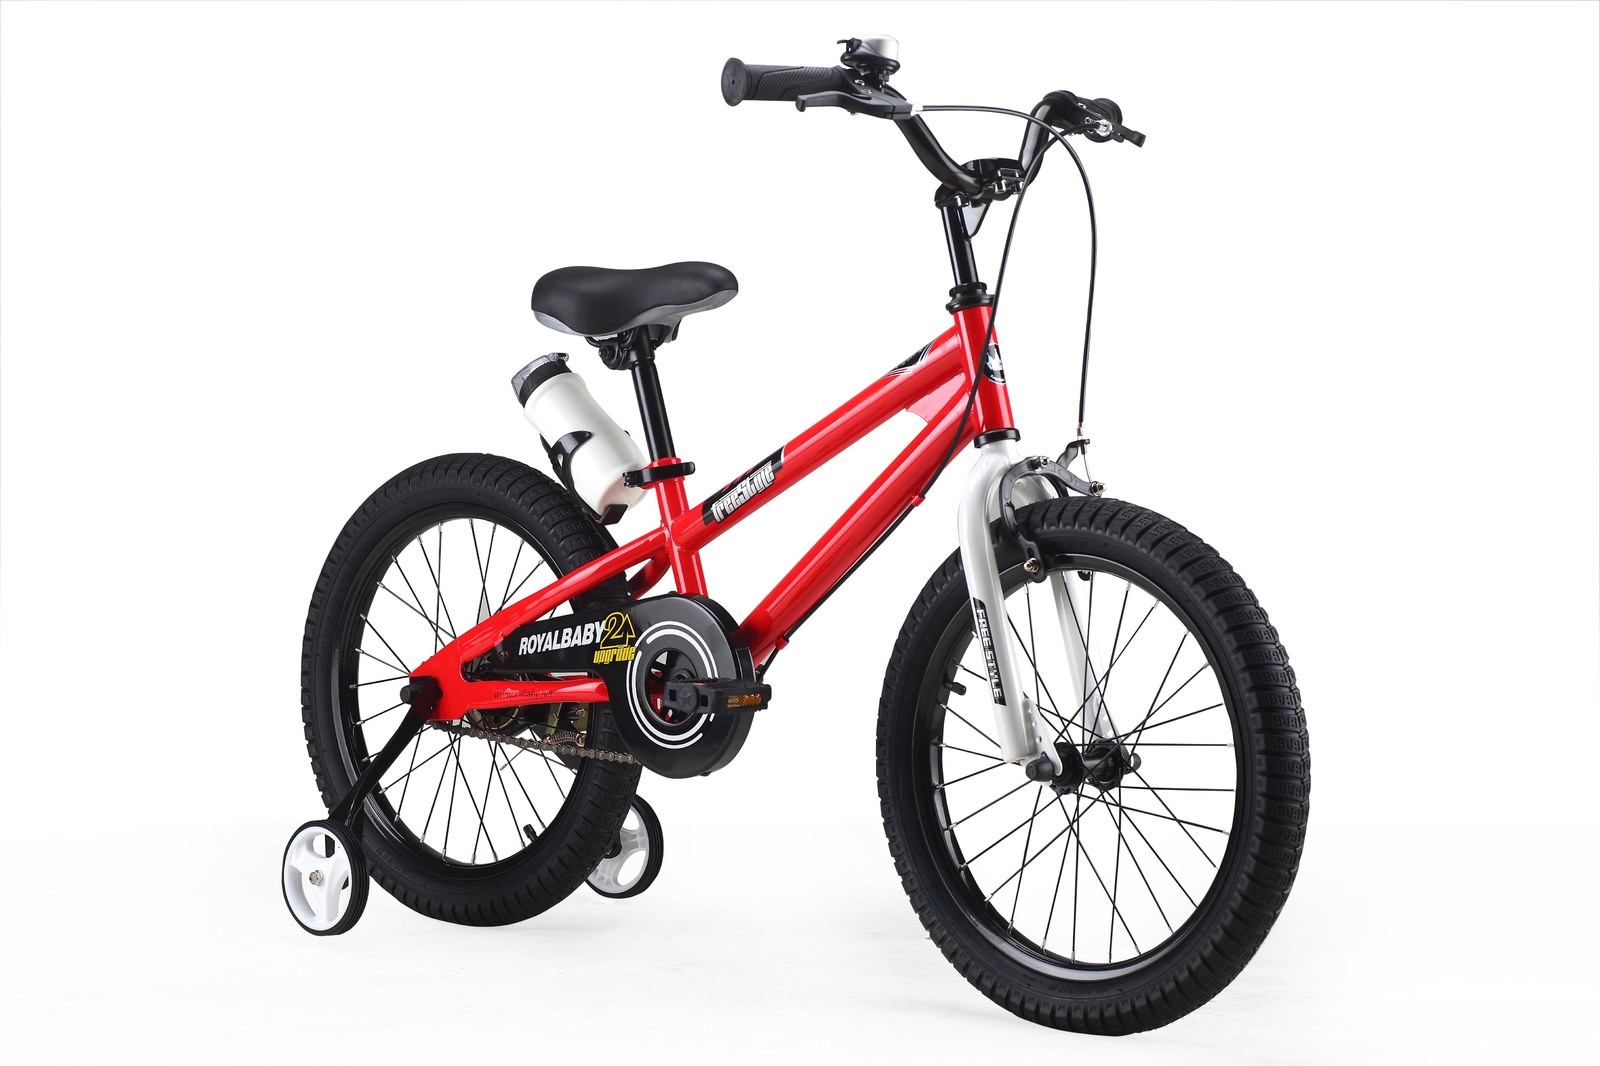 "RoyalBaby: BMX Freestyle - 18"" Bike (Red) image"